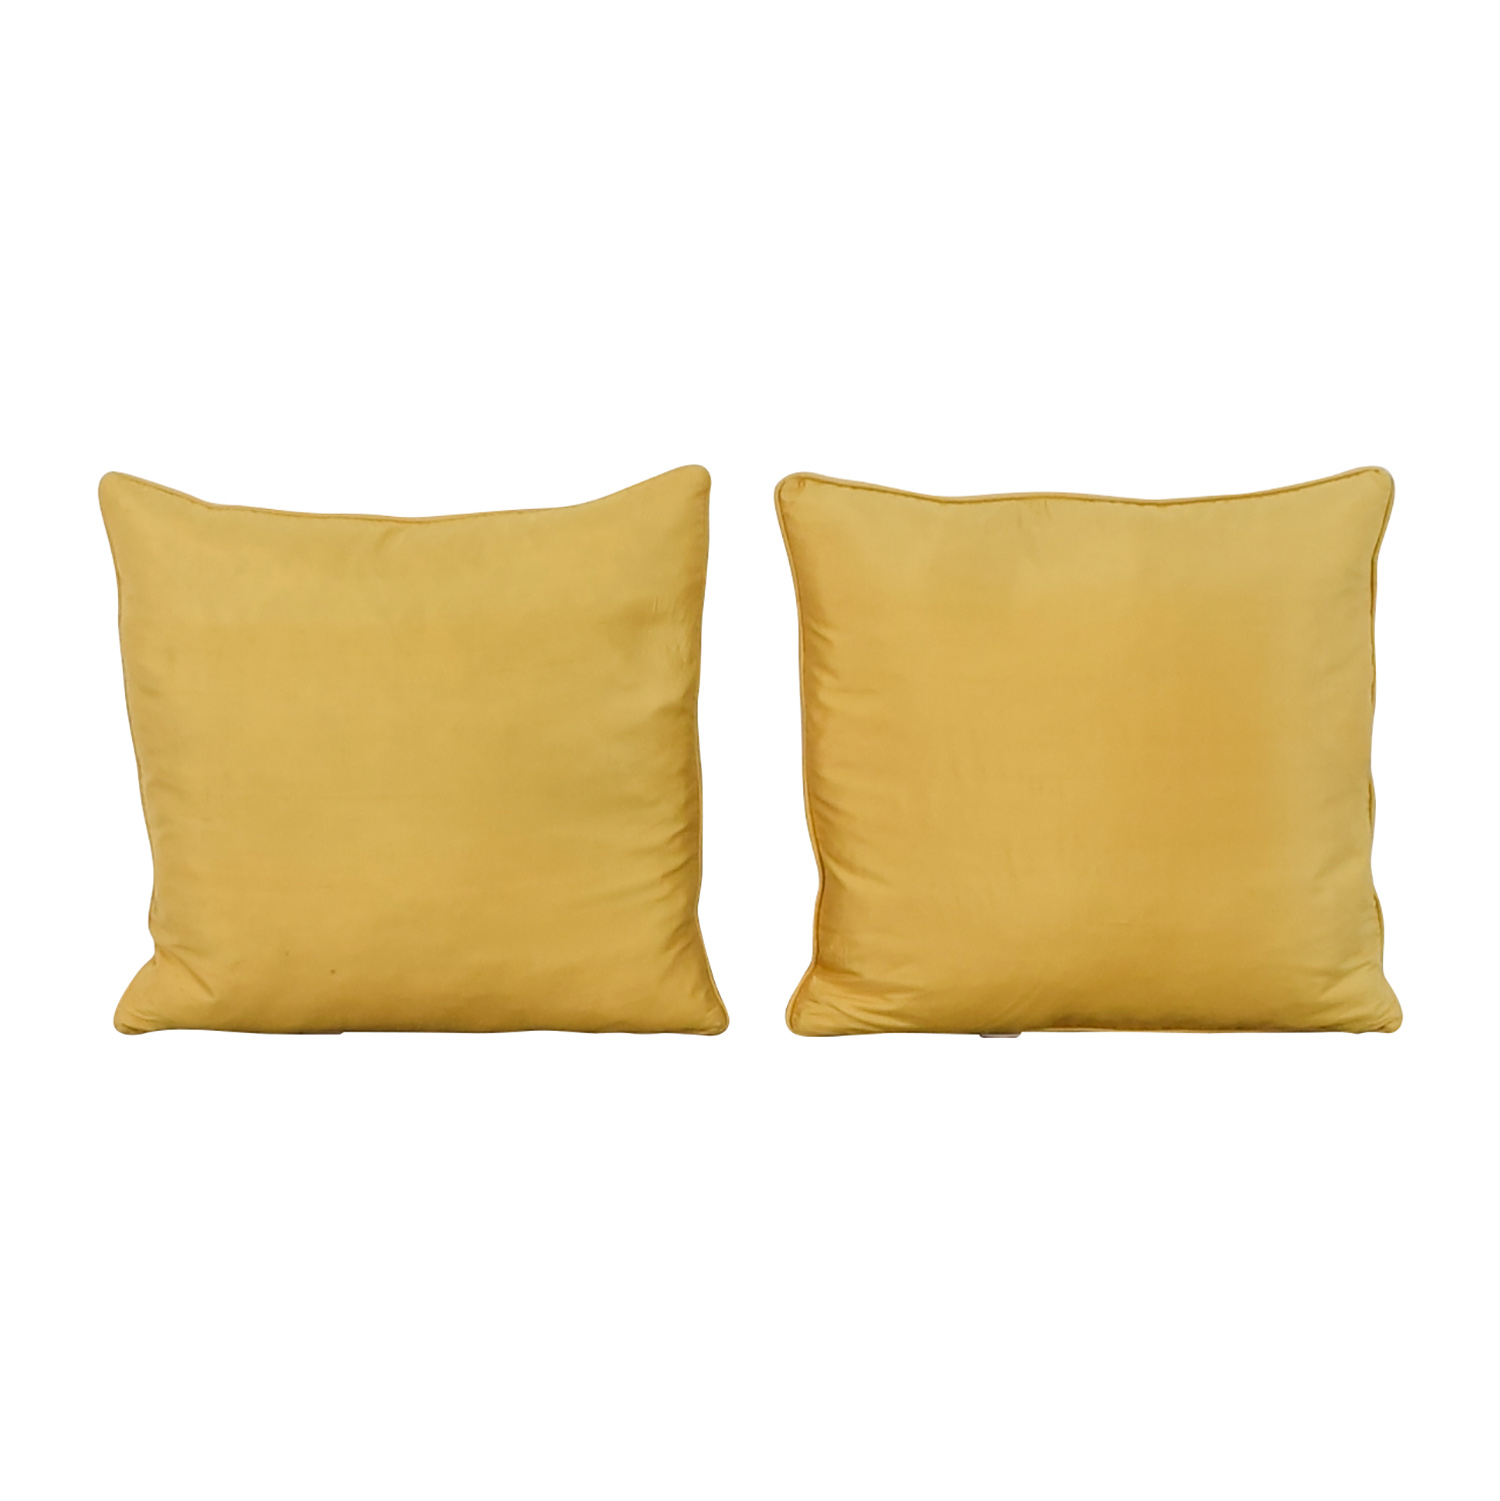 Pier 1 Imports Pier 1 Imports Honey Silk Toss Pillows